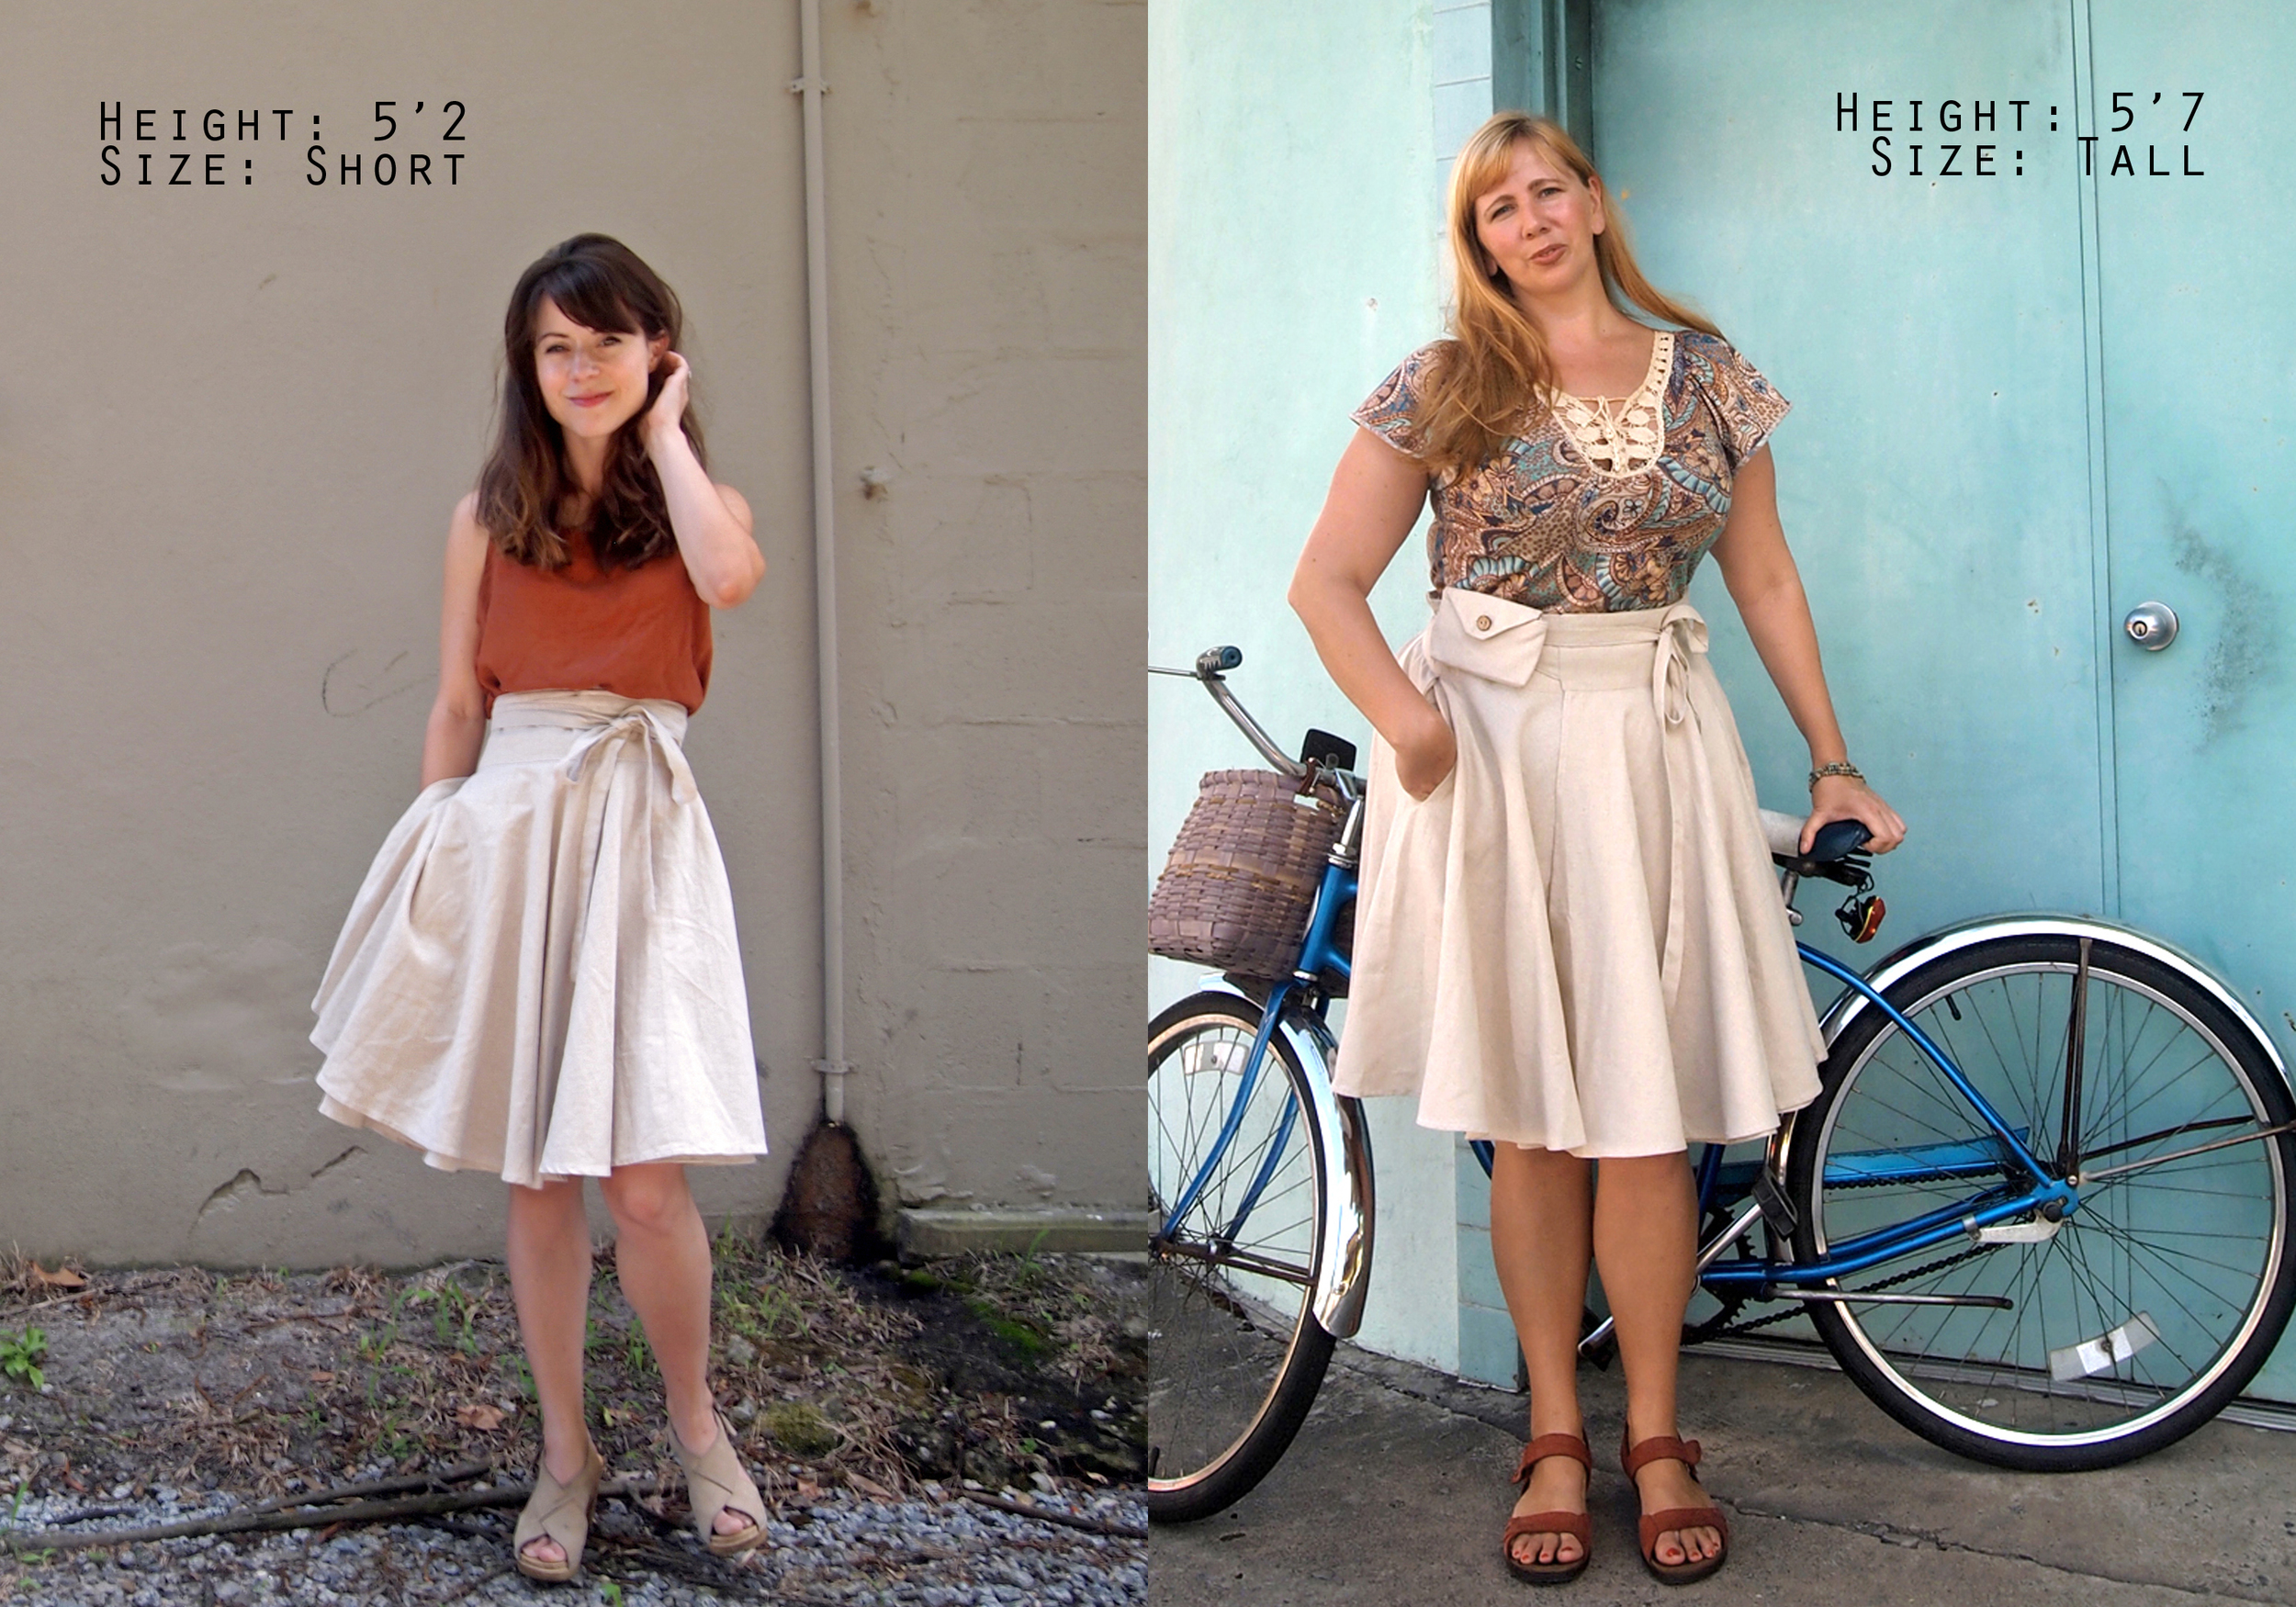 Skirt length comparison.